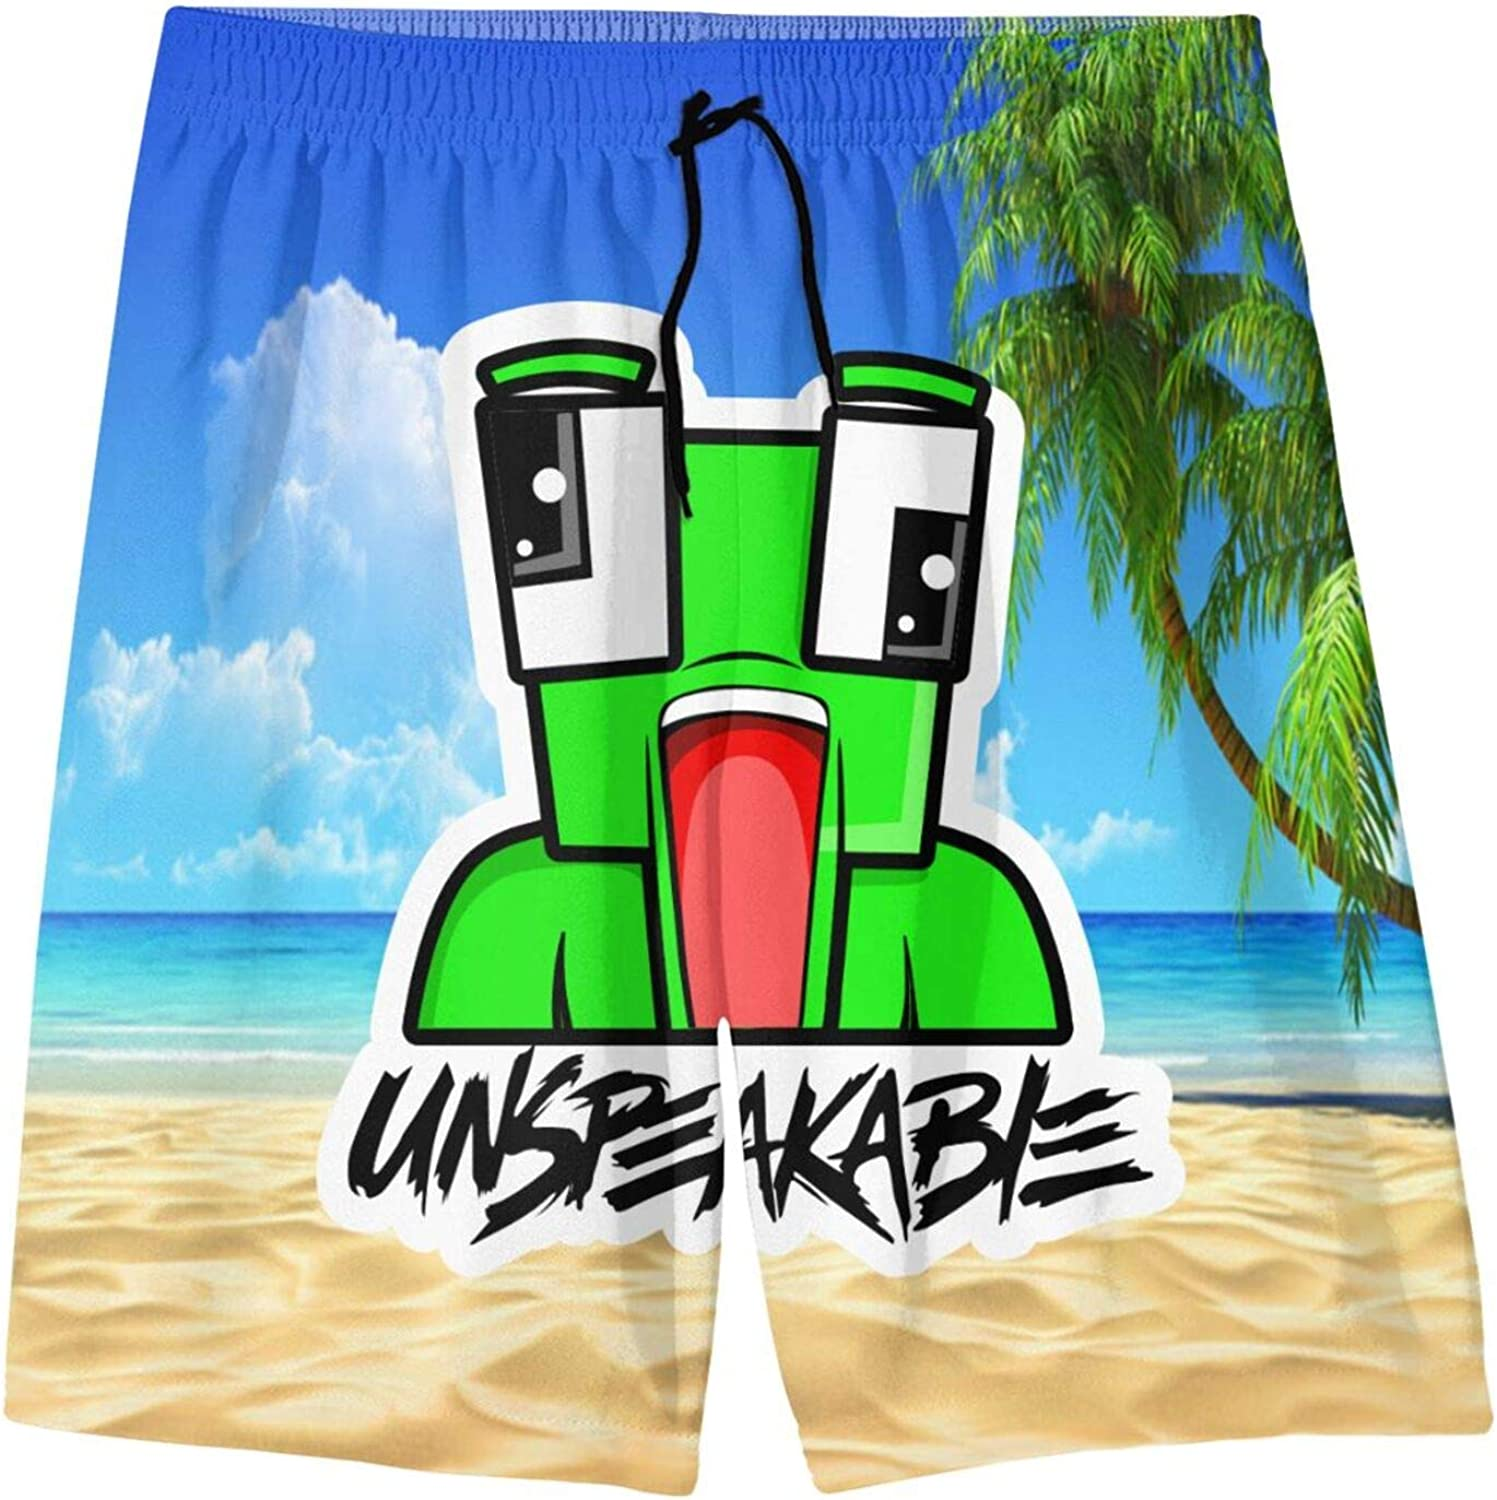 TANBAK Men's Swim Trunks Beach Board Shorts Swimsuits Elastic Waist with Pockets Printed Quick Dry Casual : Clothing, Shoes & Jewelry